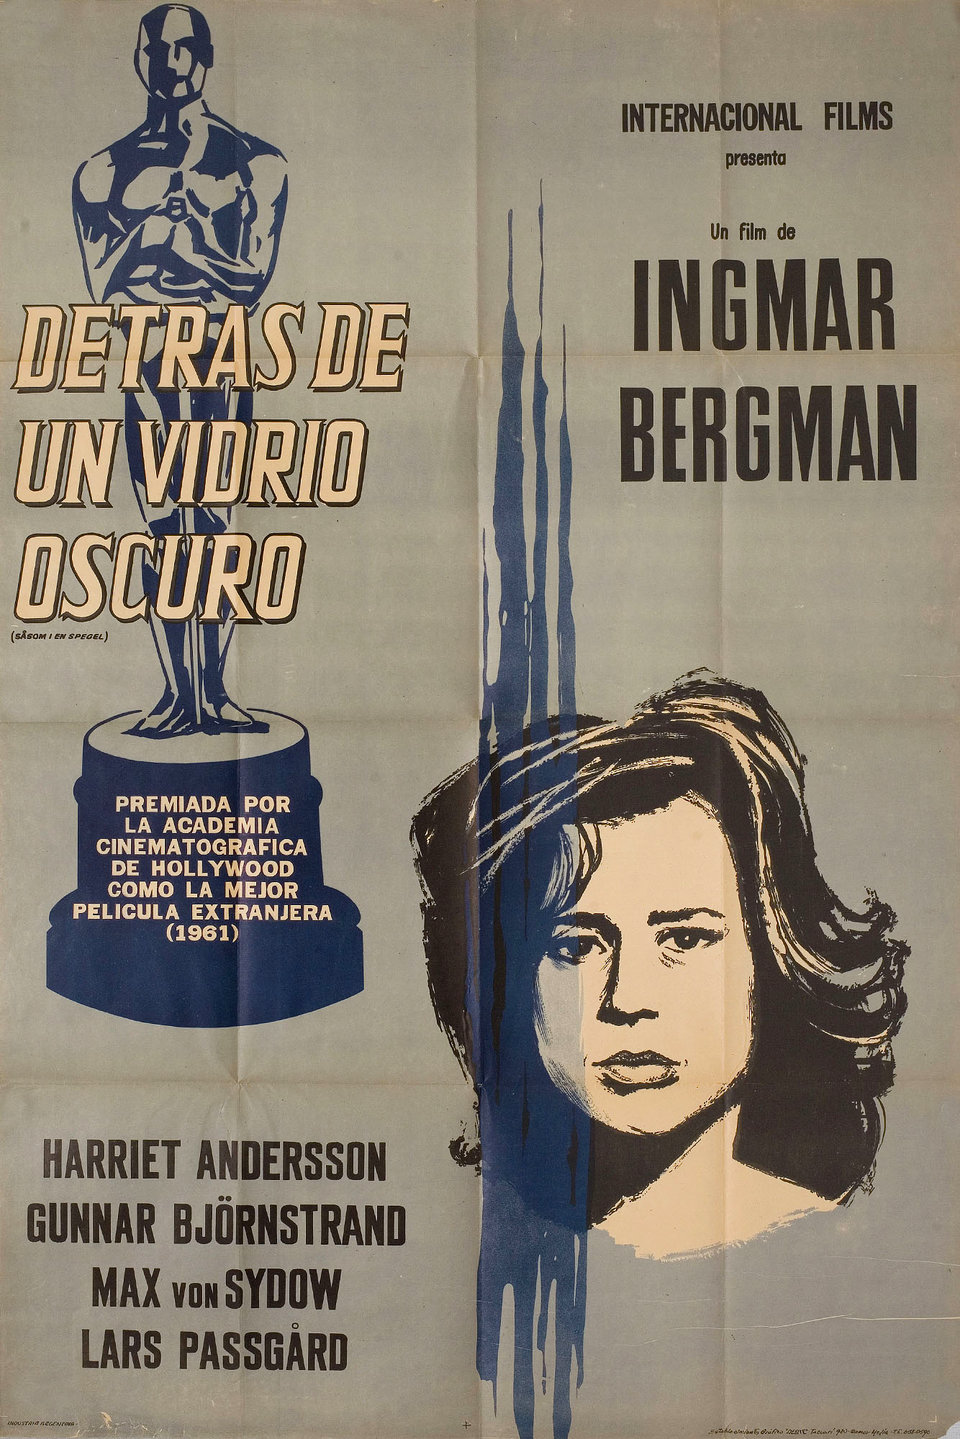 Through A Glass Darkly (1961) - Directed by: Ingmar BergmanStarring: Harriet Andersson, Gunnar Bjornstrand, Max Von SydowRated: NRRunning Time: 1h 21mTMM Score: 5 StarsSTRENGTHS: Acting, ThemesWEAKNESSES: Seriously?